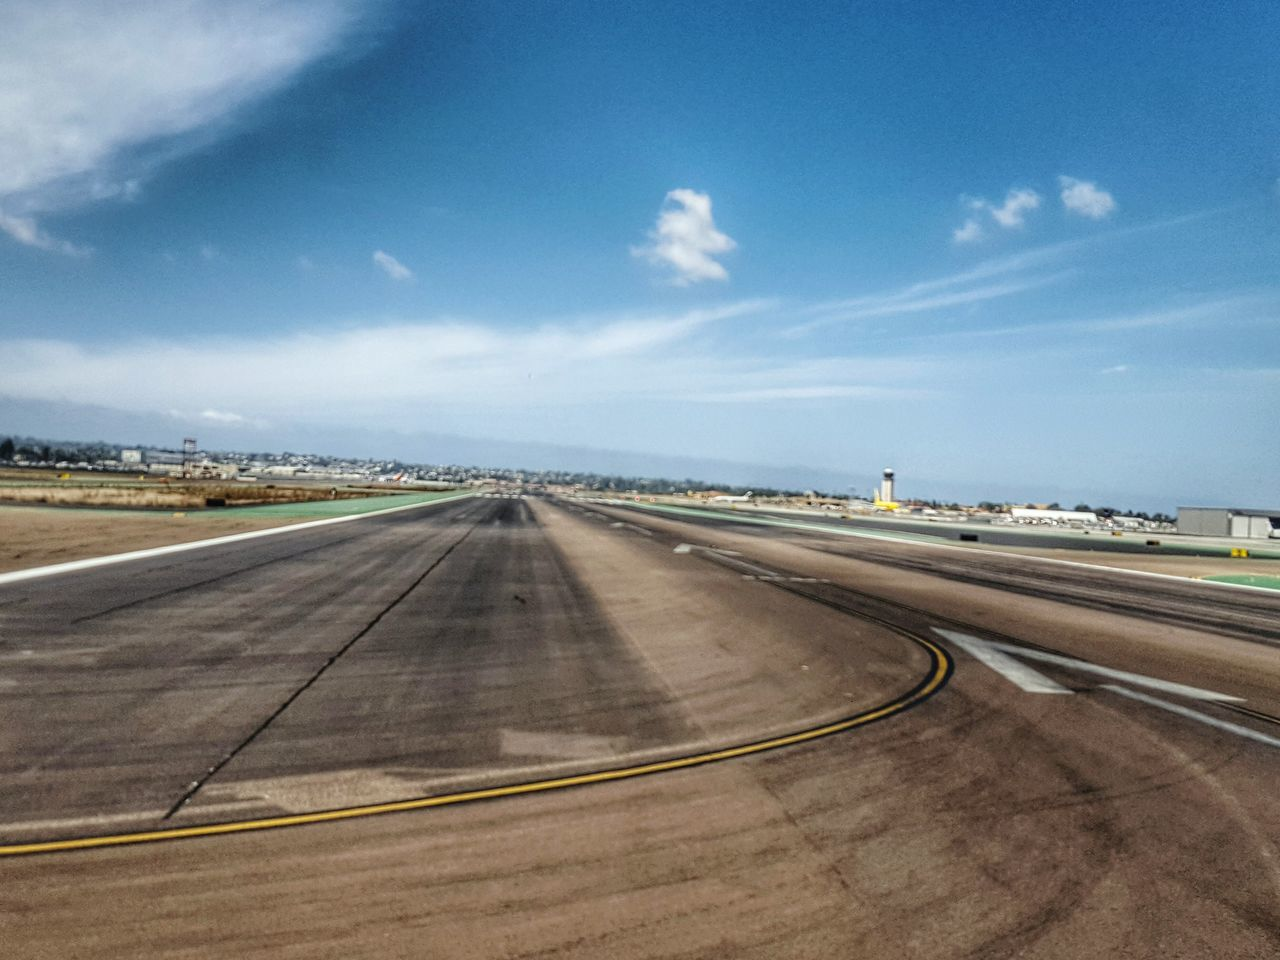 transportation, sky, day, airport runway, the way forward, road, outdoors, airport, blue, asphalt, dividing line, cloud - sky, airplane, runway, no people, nature